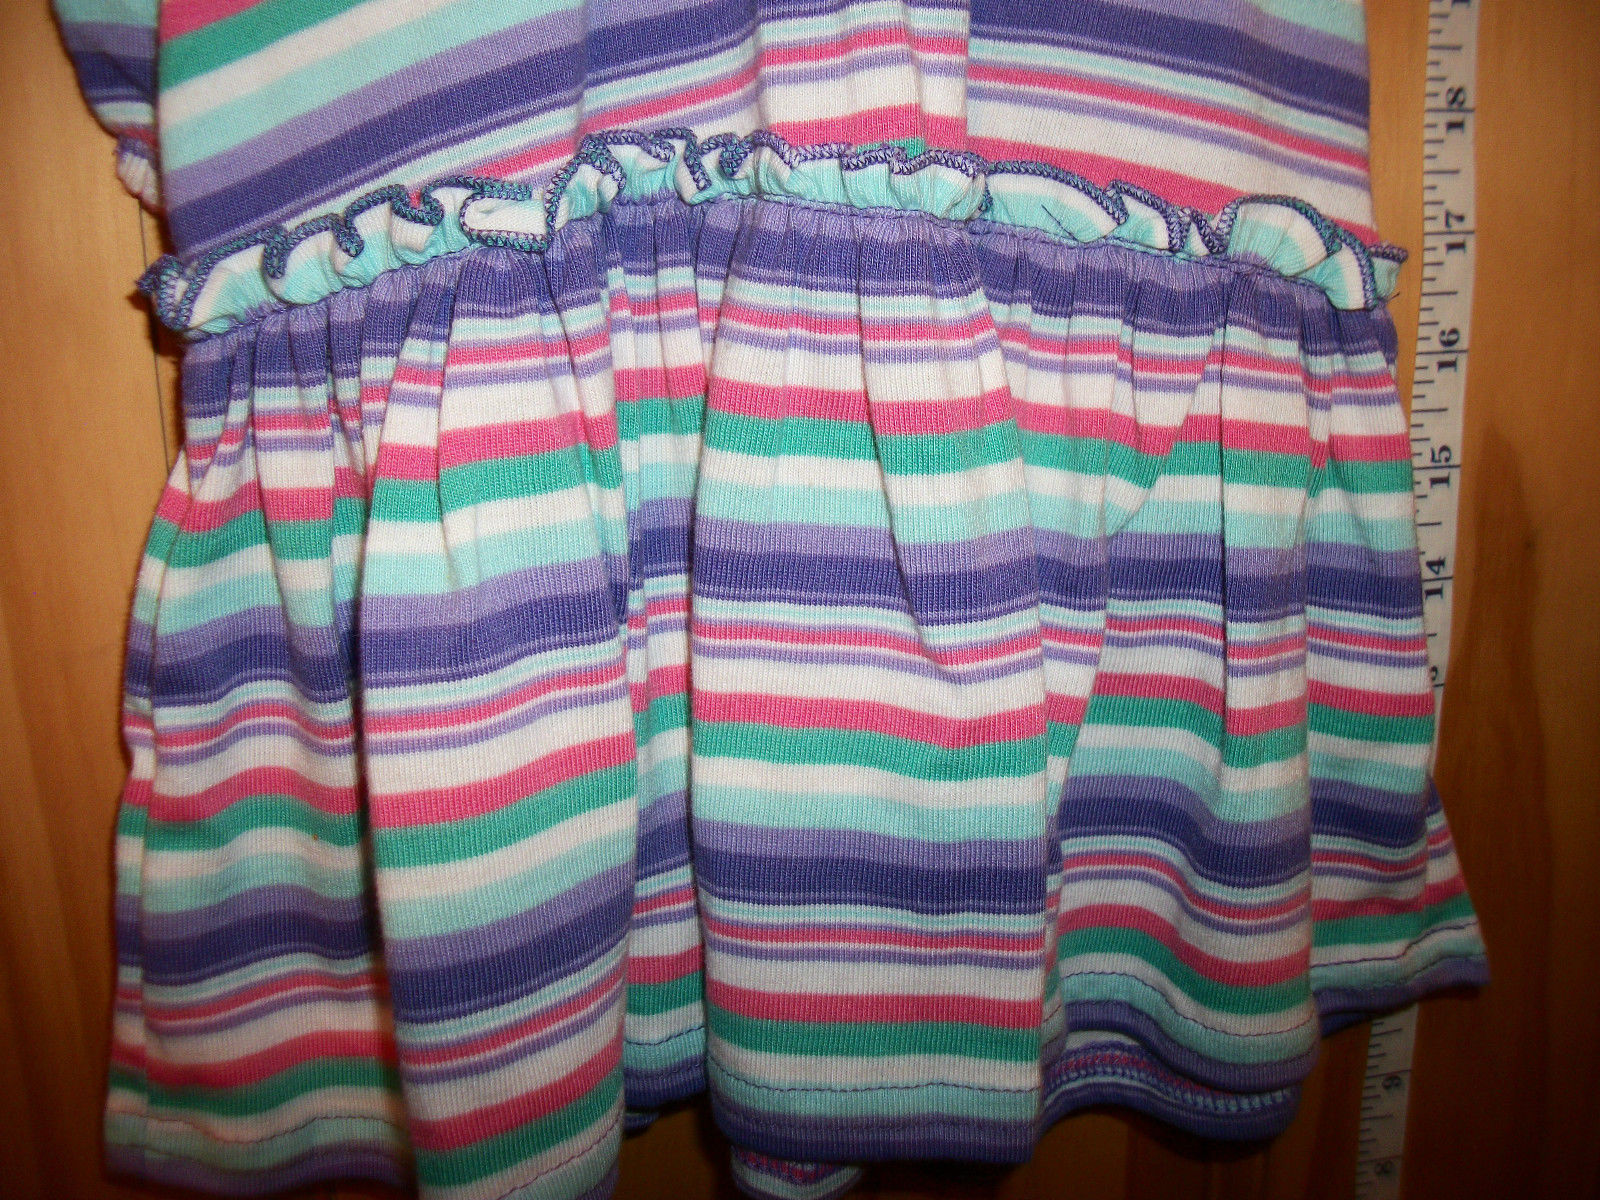 Wonder Kids Baby Clothes 18M Infant Girl Outfit Bloomers Purple Stripe Dress Set